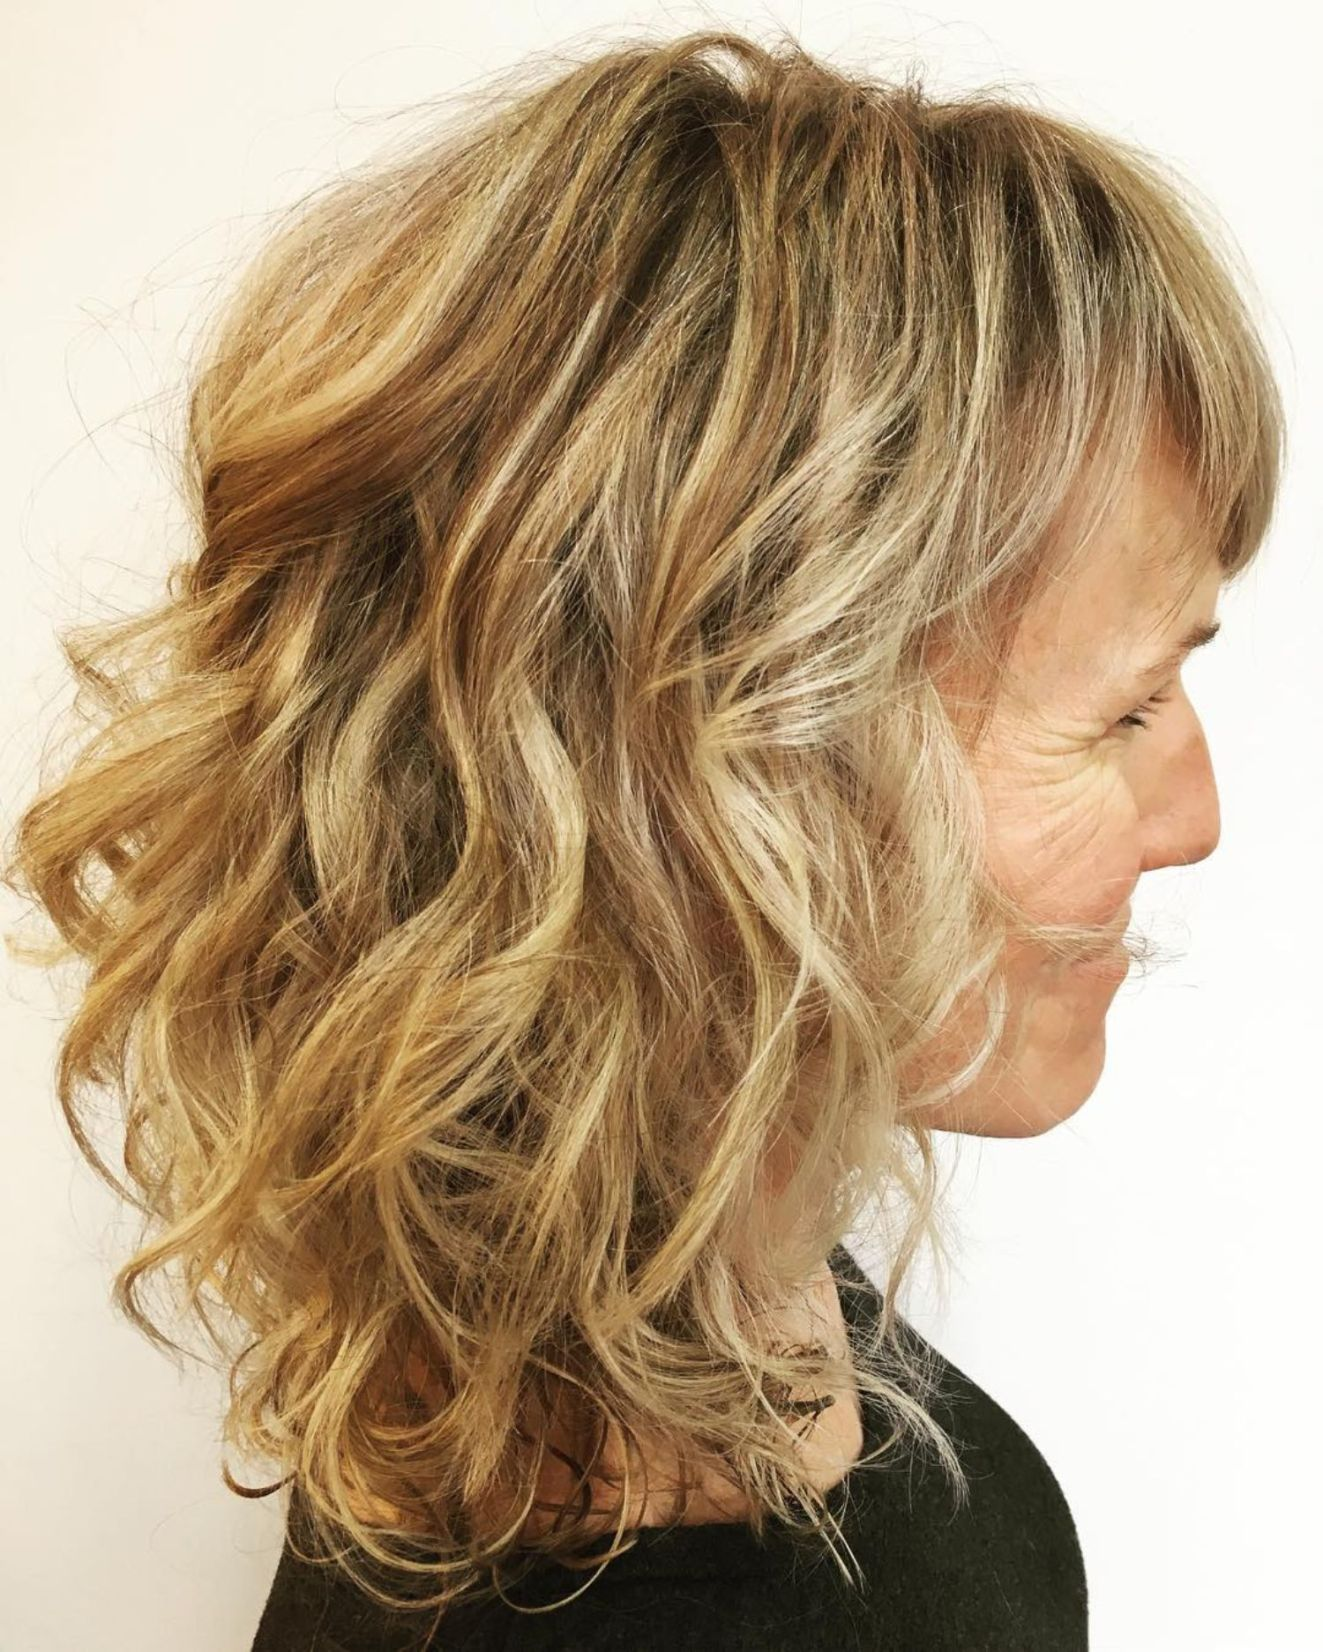 43+ Hairstyles medium length with bangs over 50 ideas